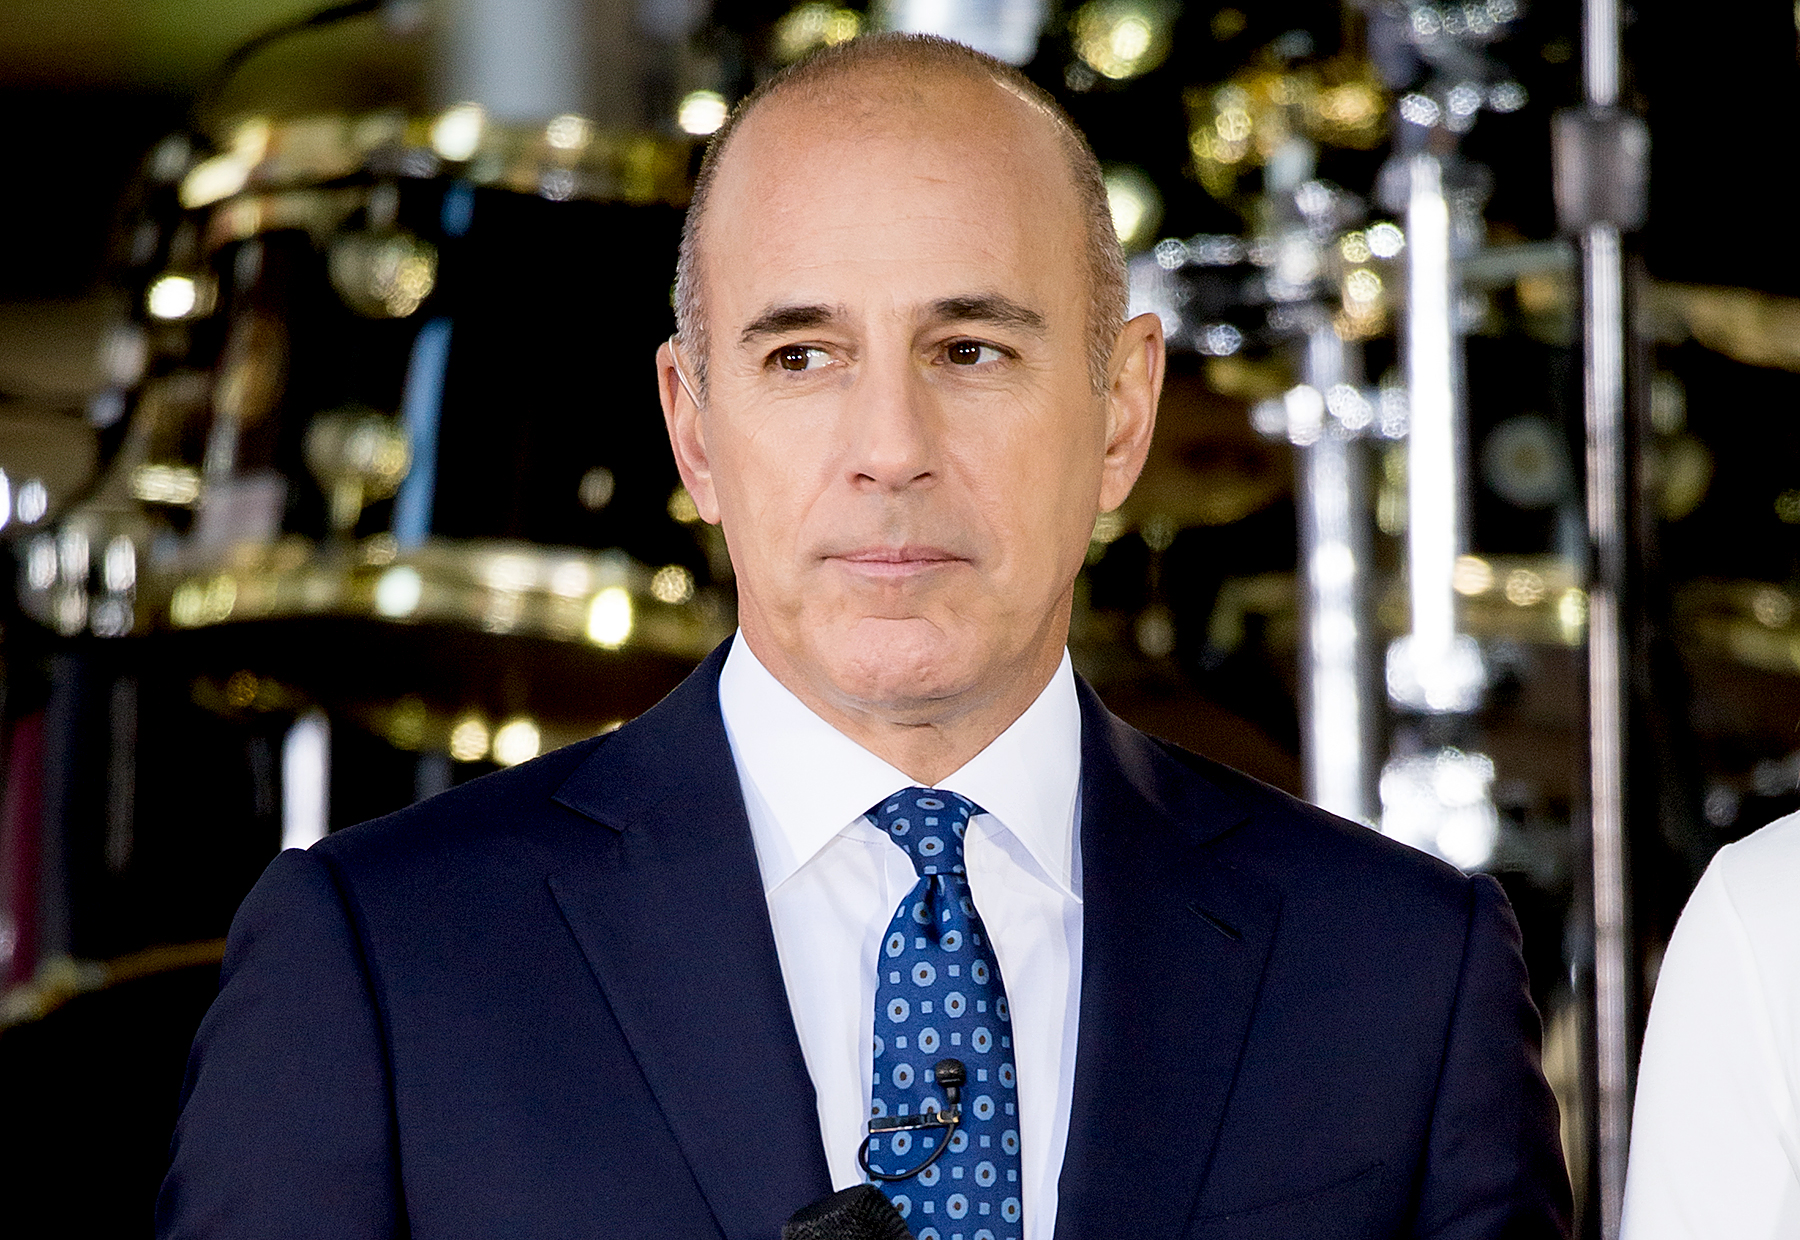 Former 'Today' staffer who had alleged affair with Matt Lauer shares story